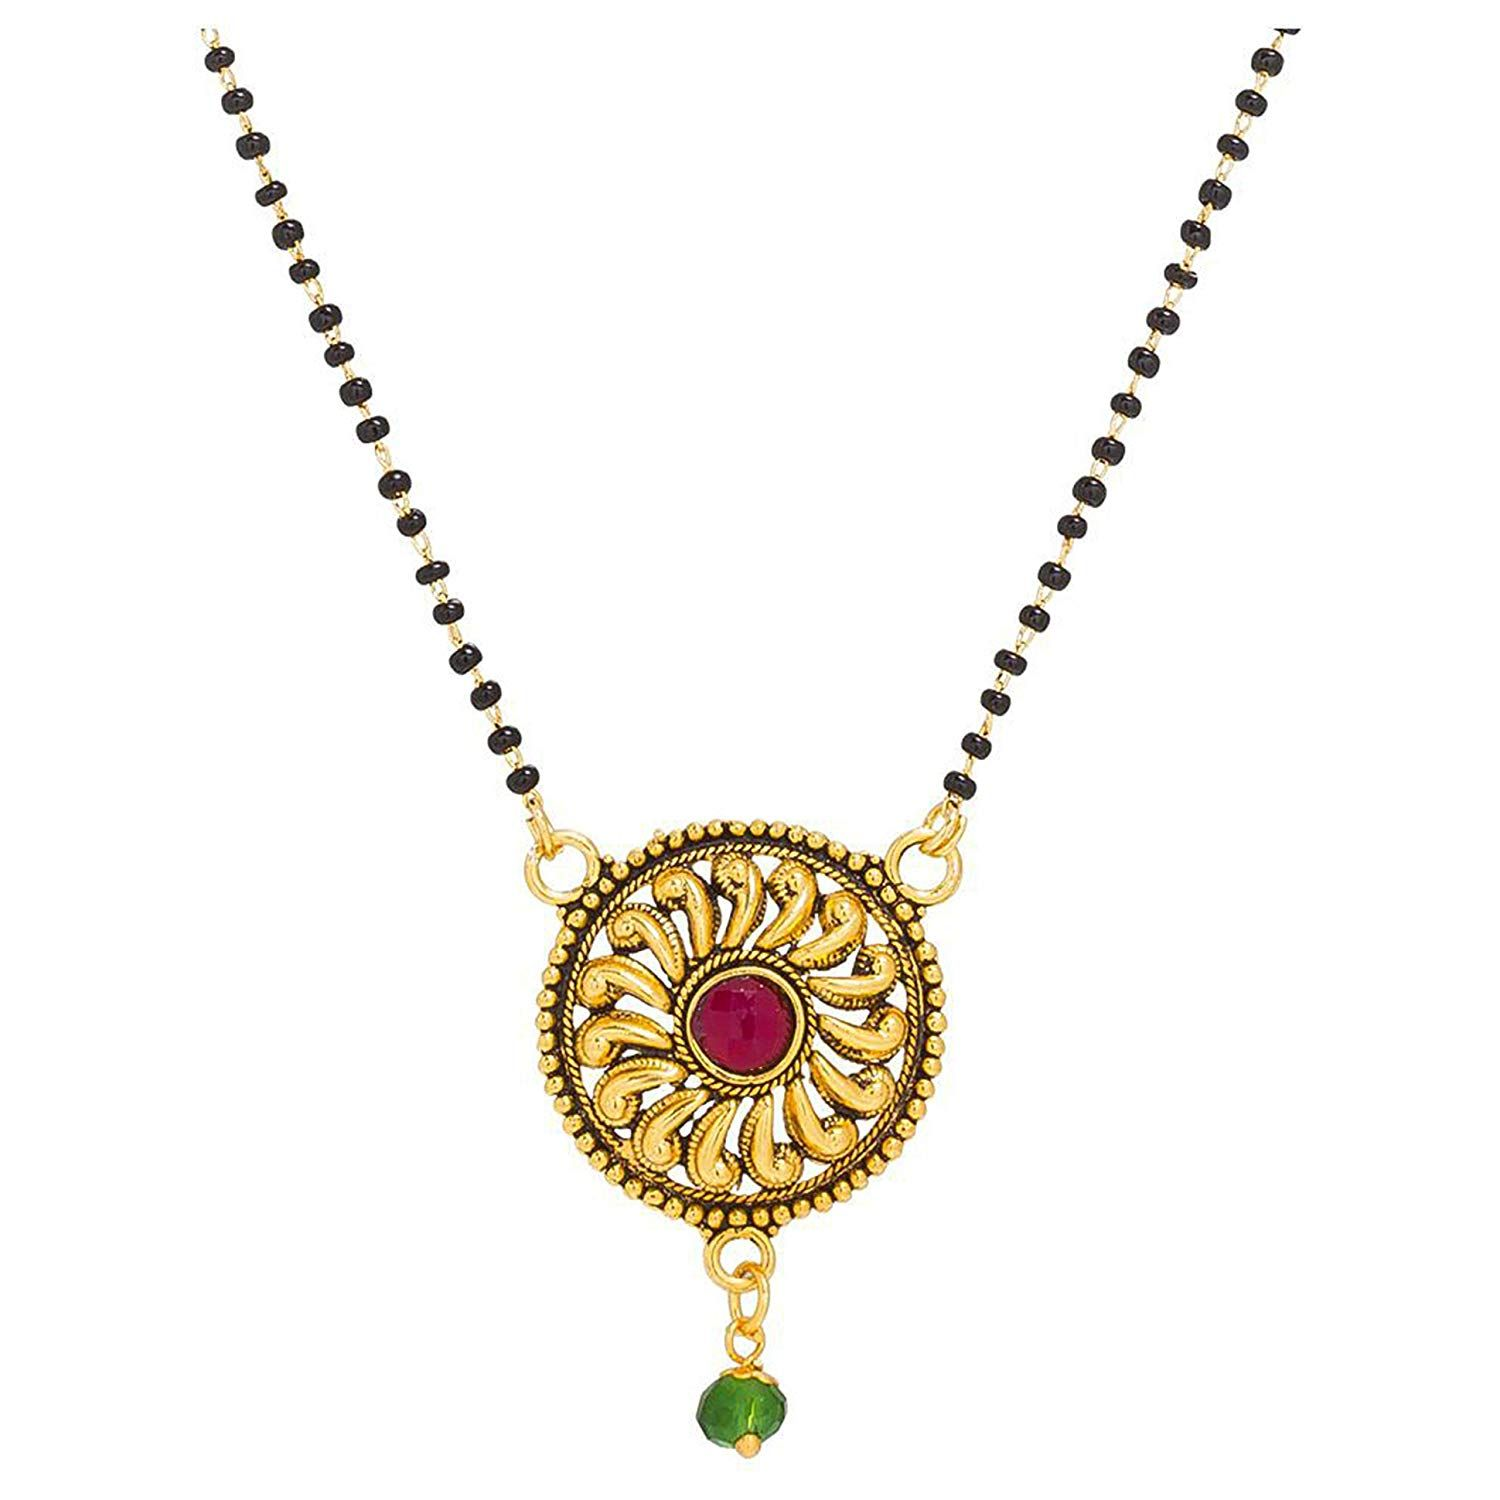 Antique mangalsutra design ad black and gold line chain gold